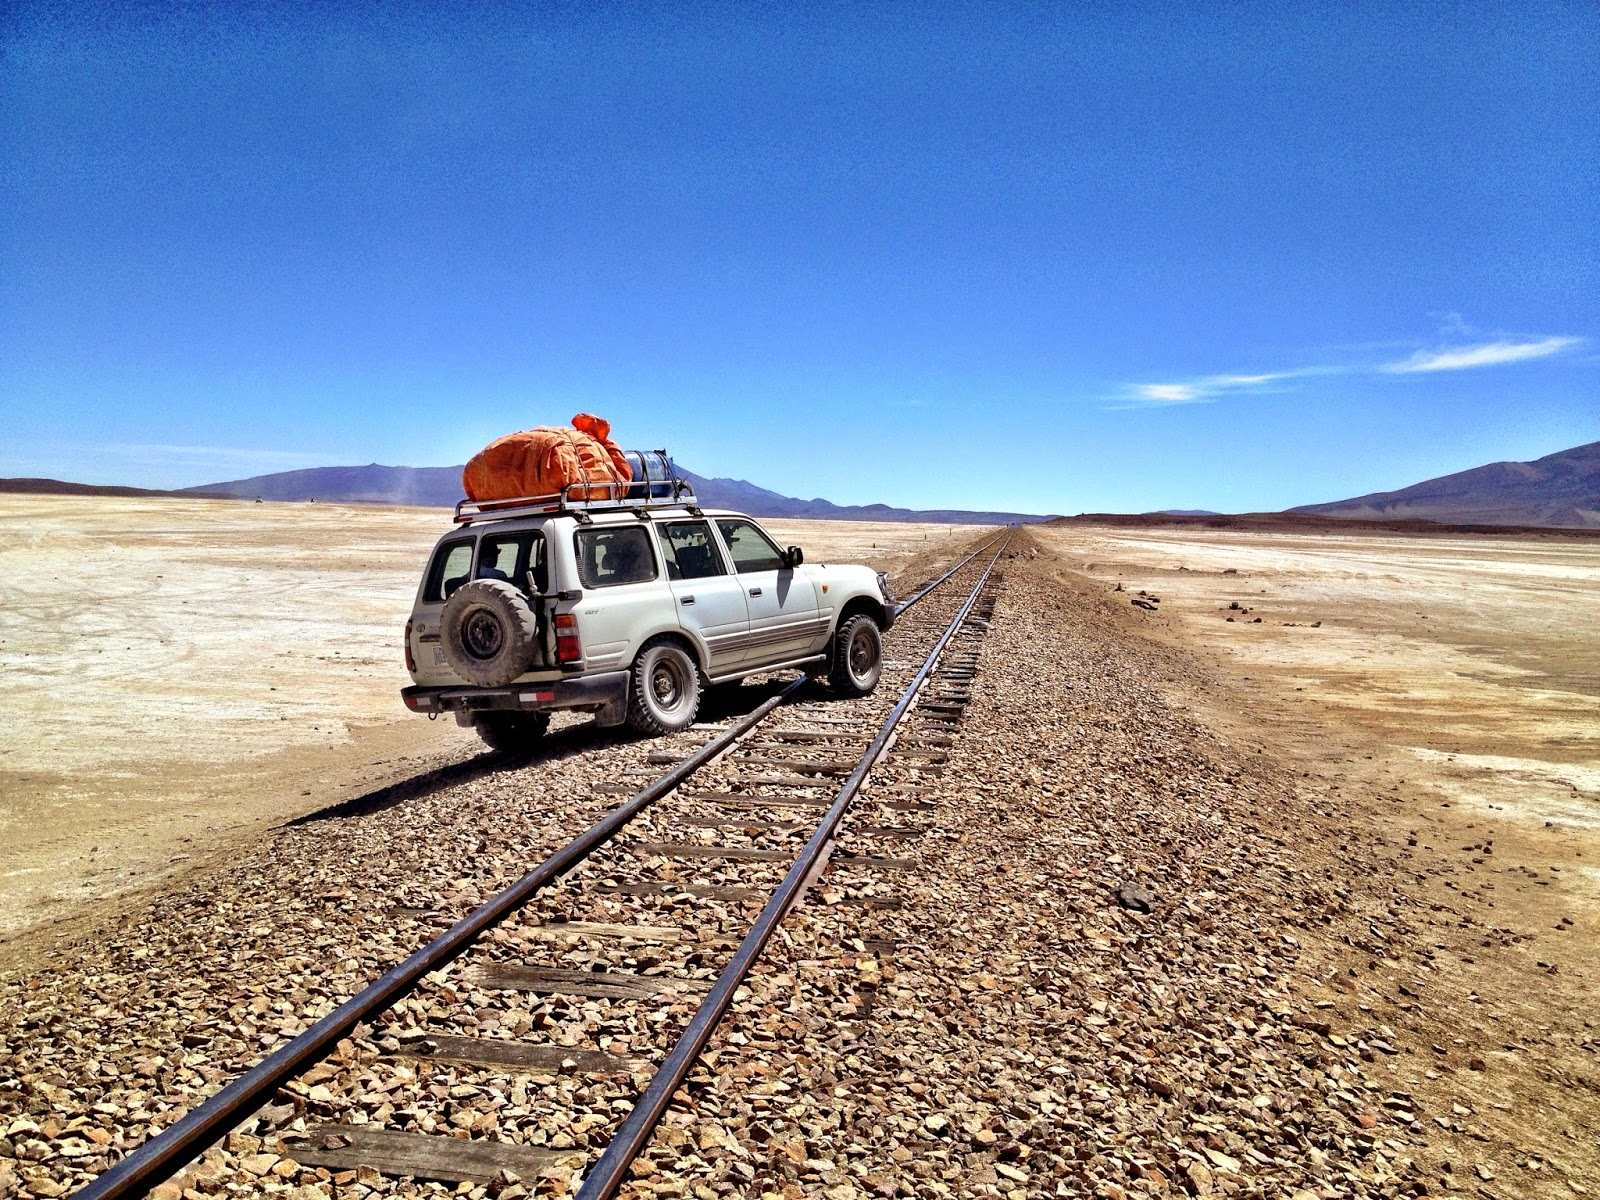 Crossing a train track in the Uyuni desert